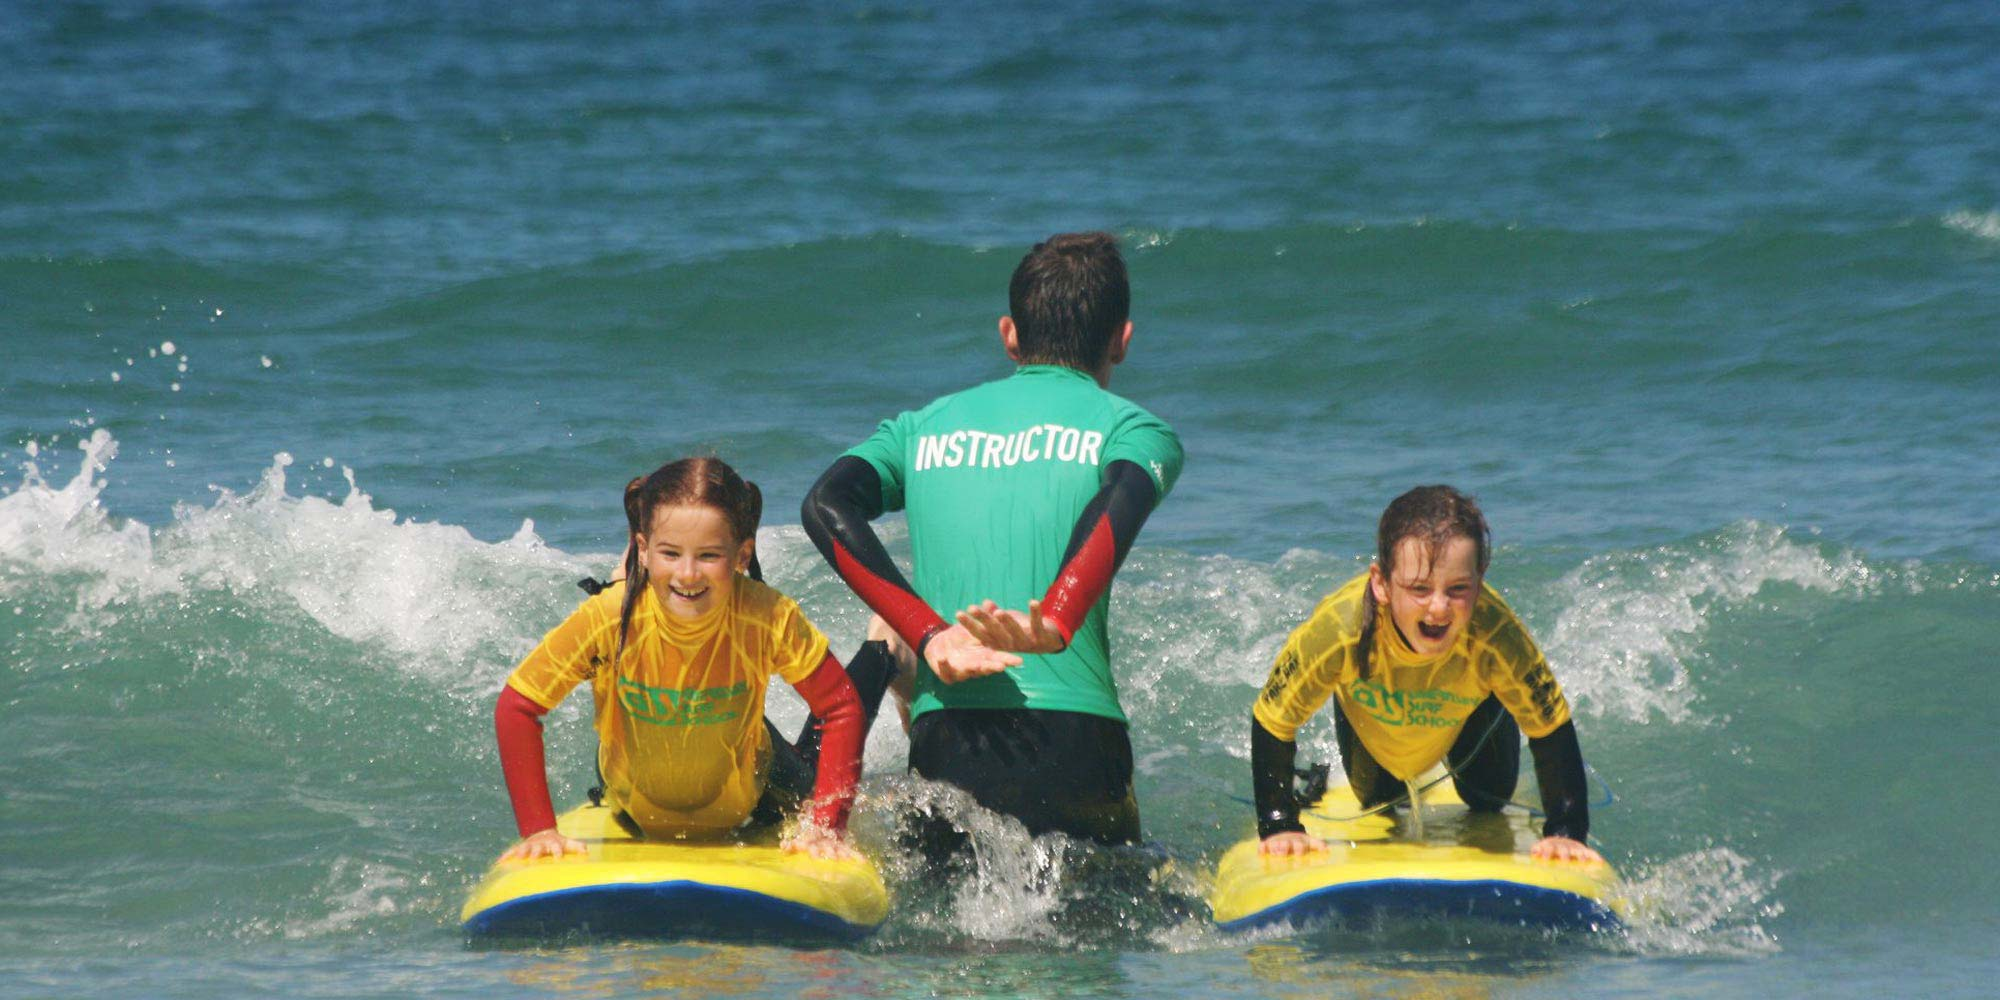 Contact the Guernsey surf school today, we look forward to hearing from you.